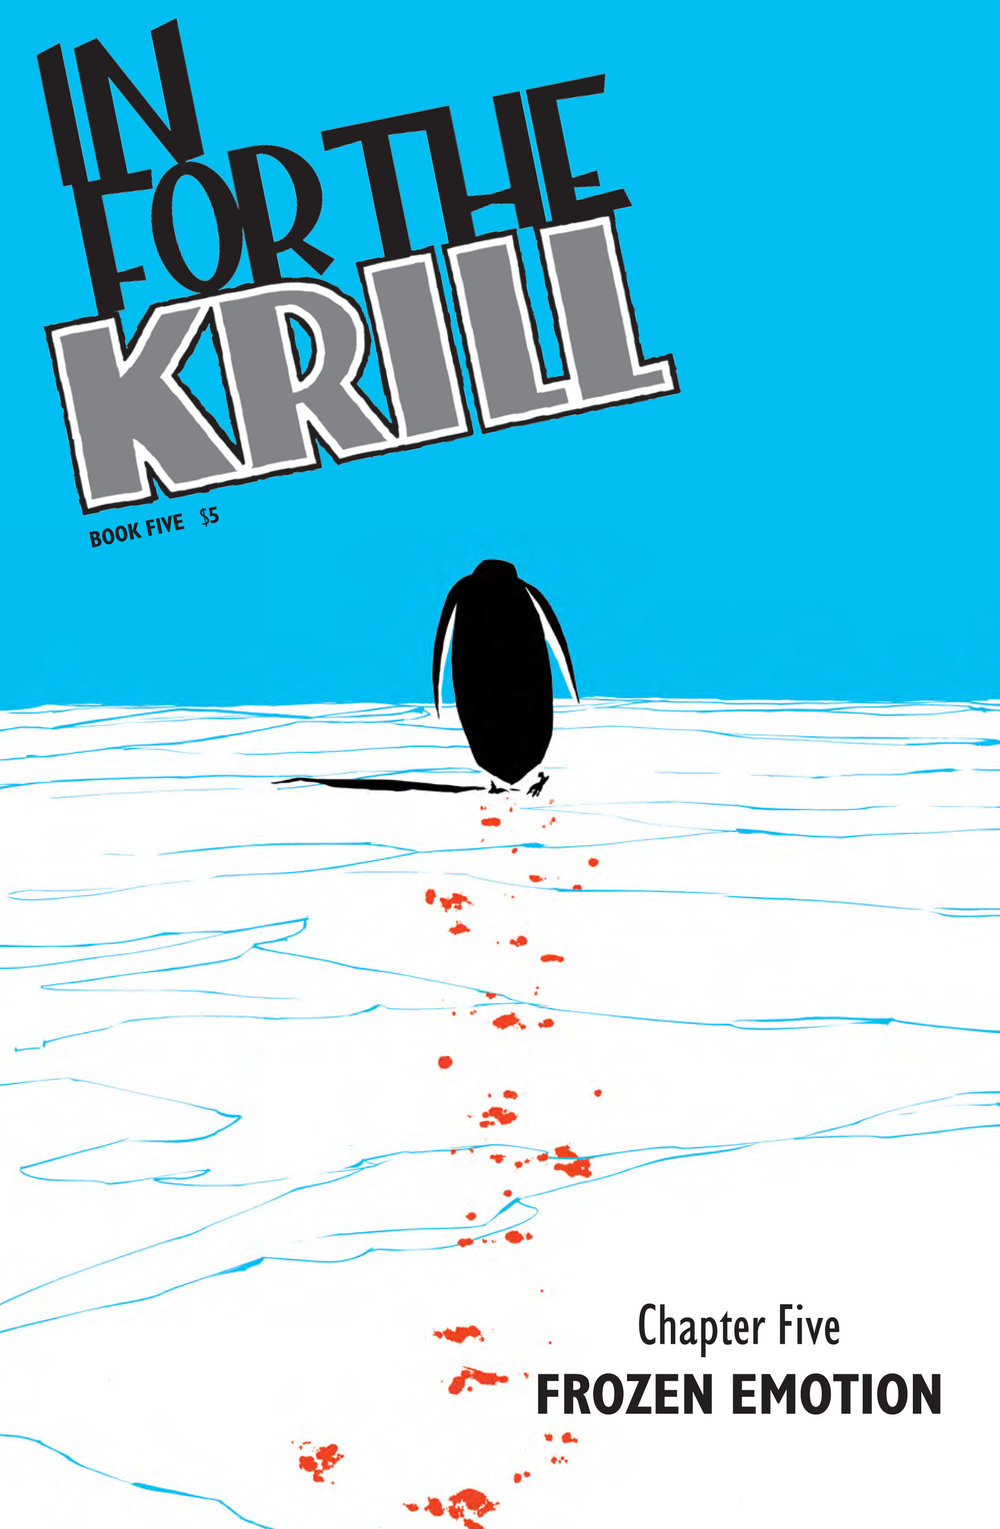 InForTheKrill_cover5.jpg